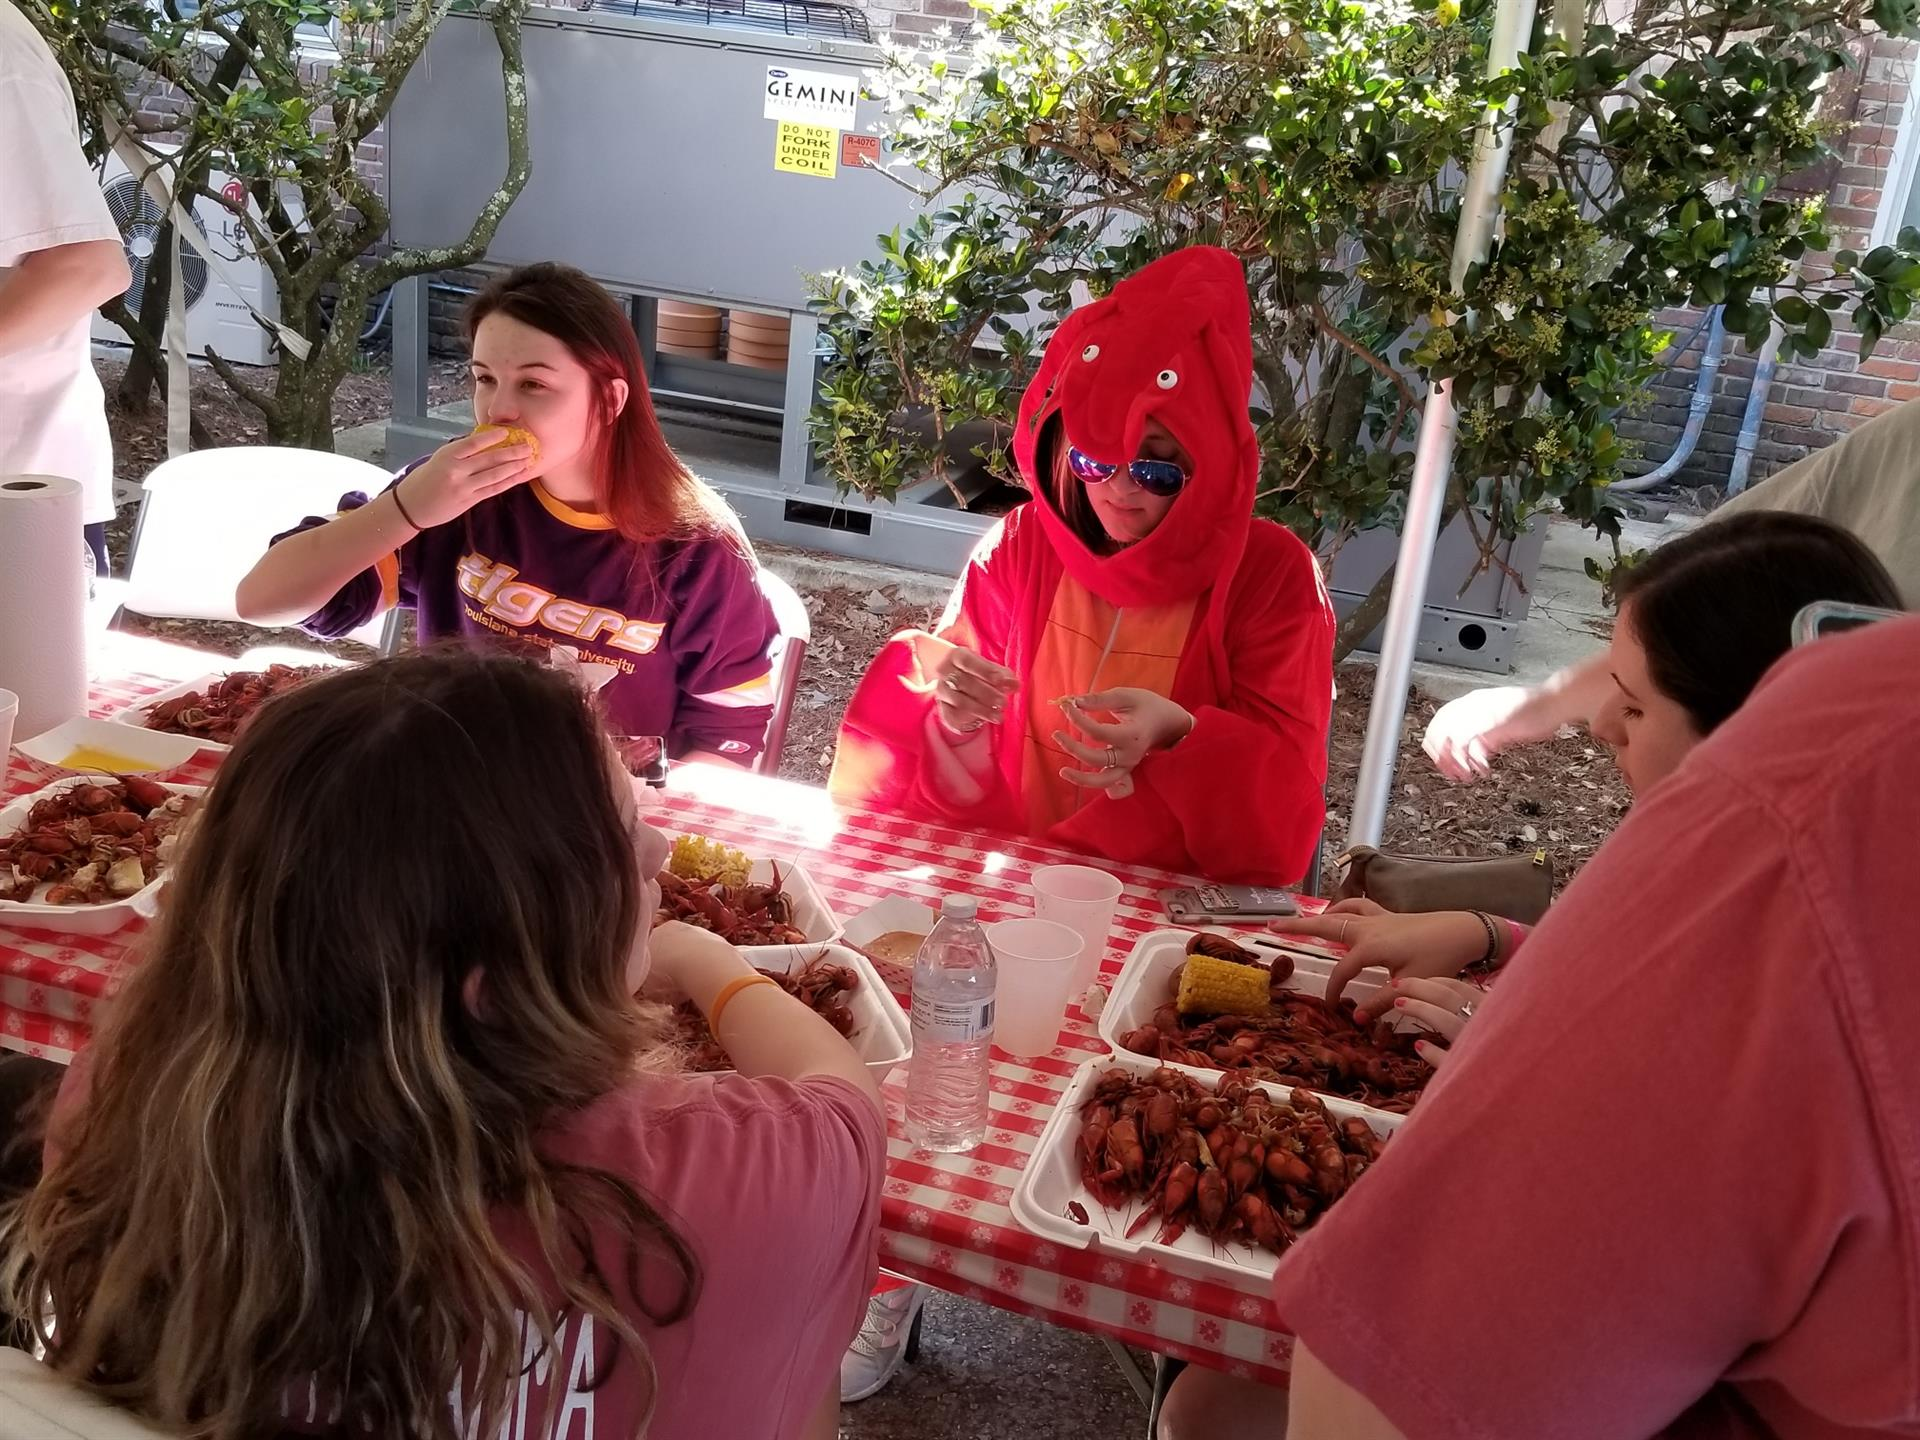 person eating in a lobster costume